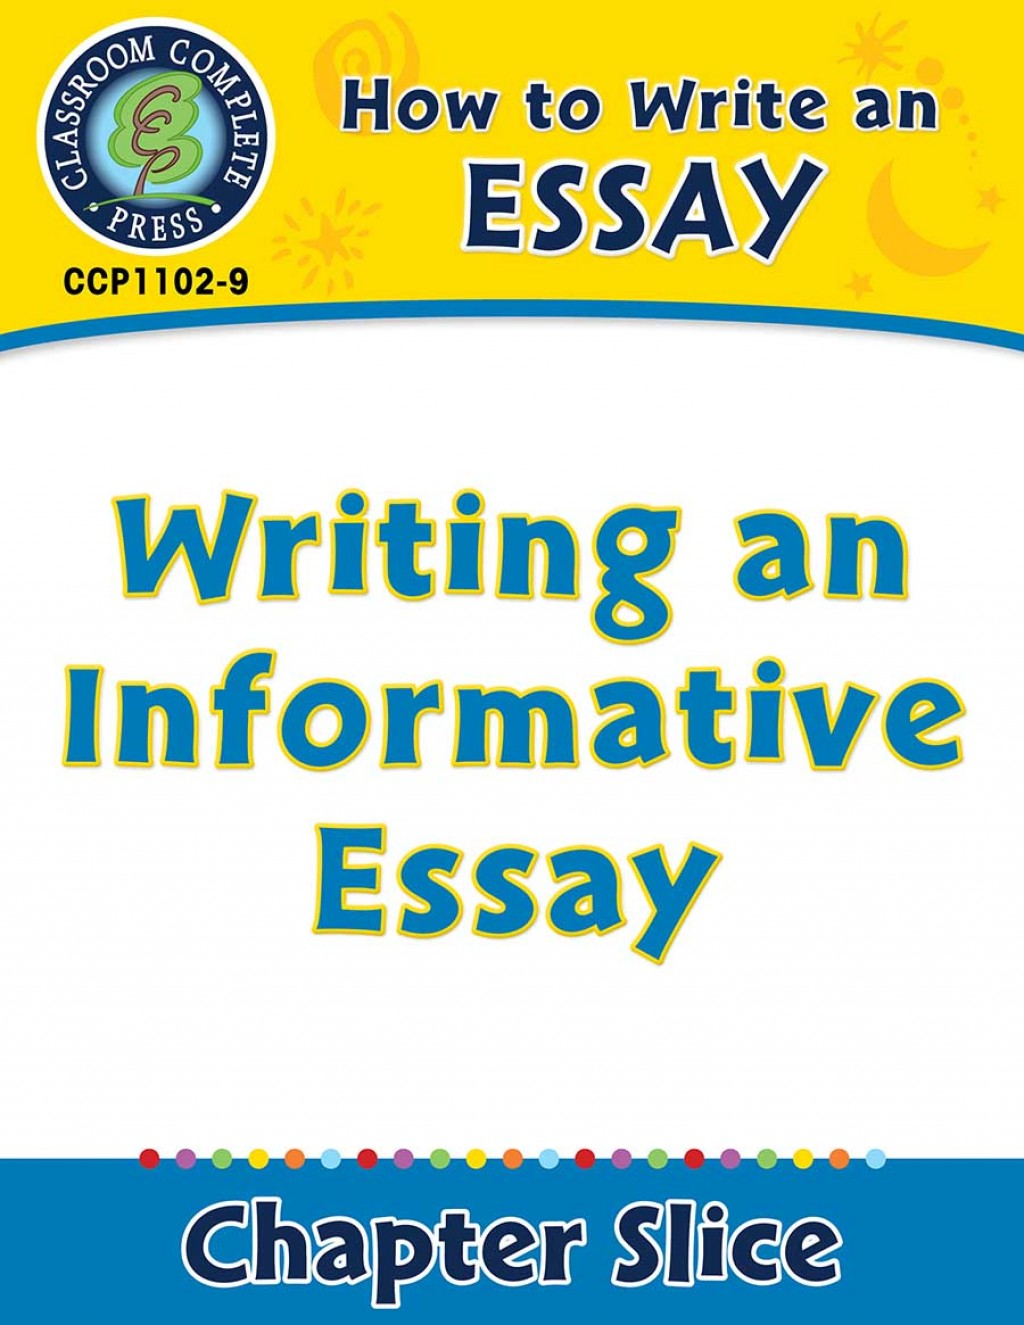 026 Essay Example Writing An Informative Ccp1102 9 Cover Sensational About The Immigrant Experience Ppt Introduction Large